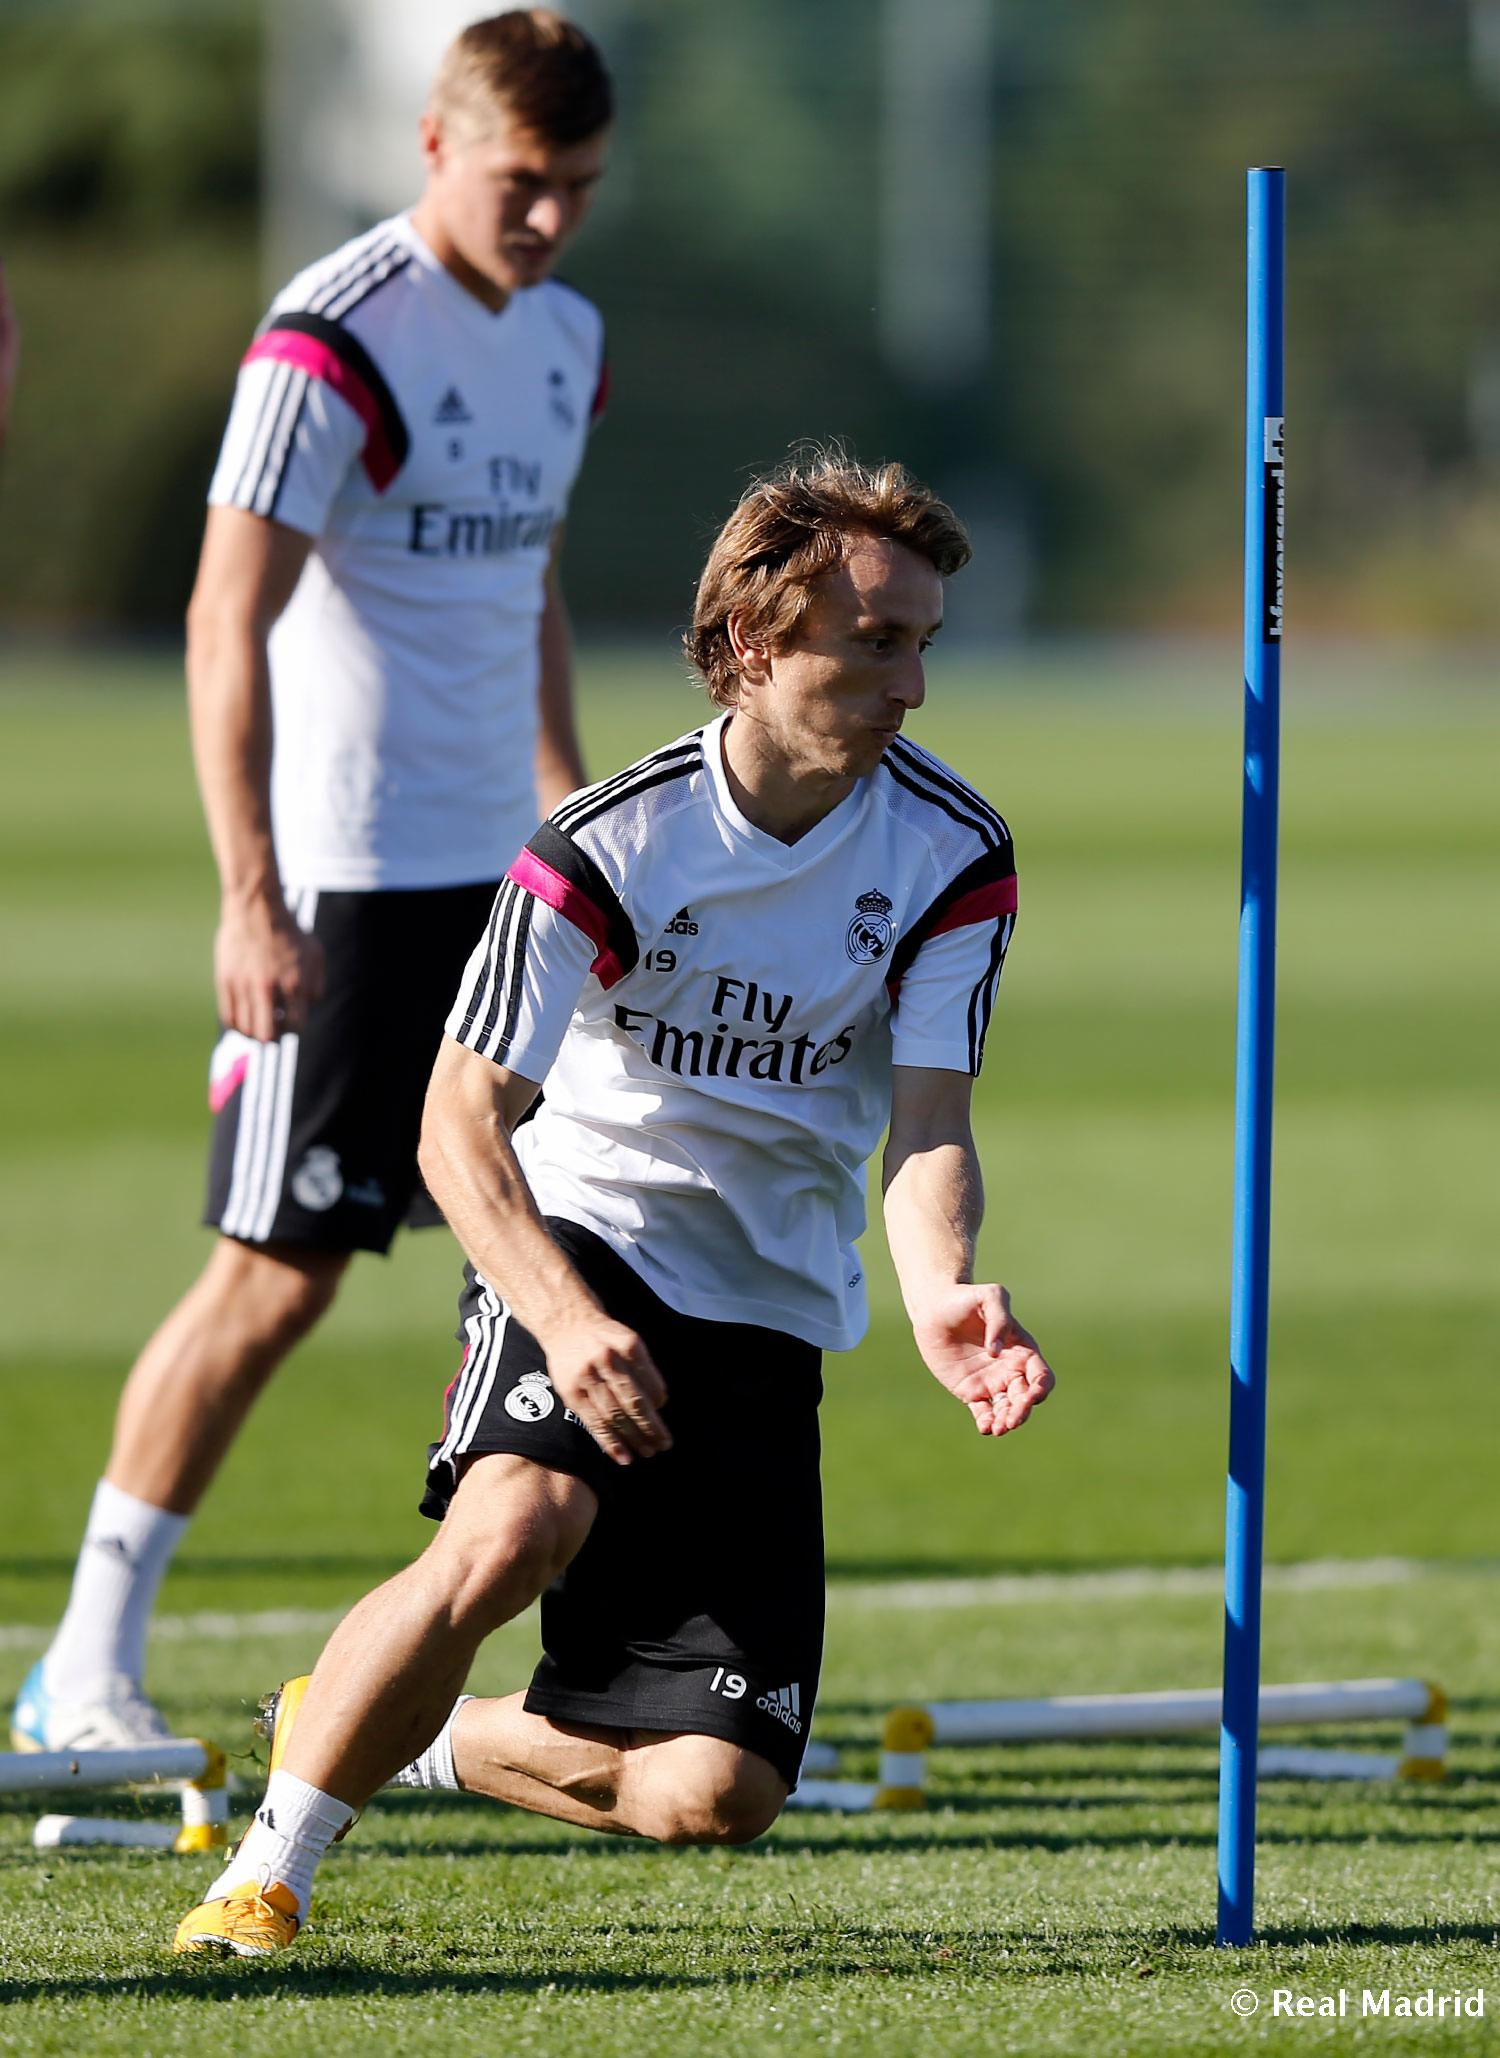 Real Madrid - Entrenamiento del Real Madrid - 17-10-2014